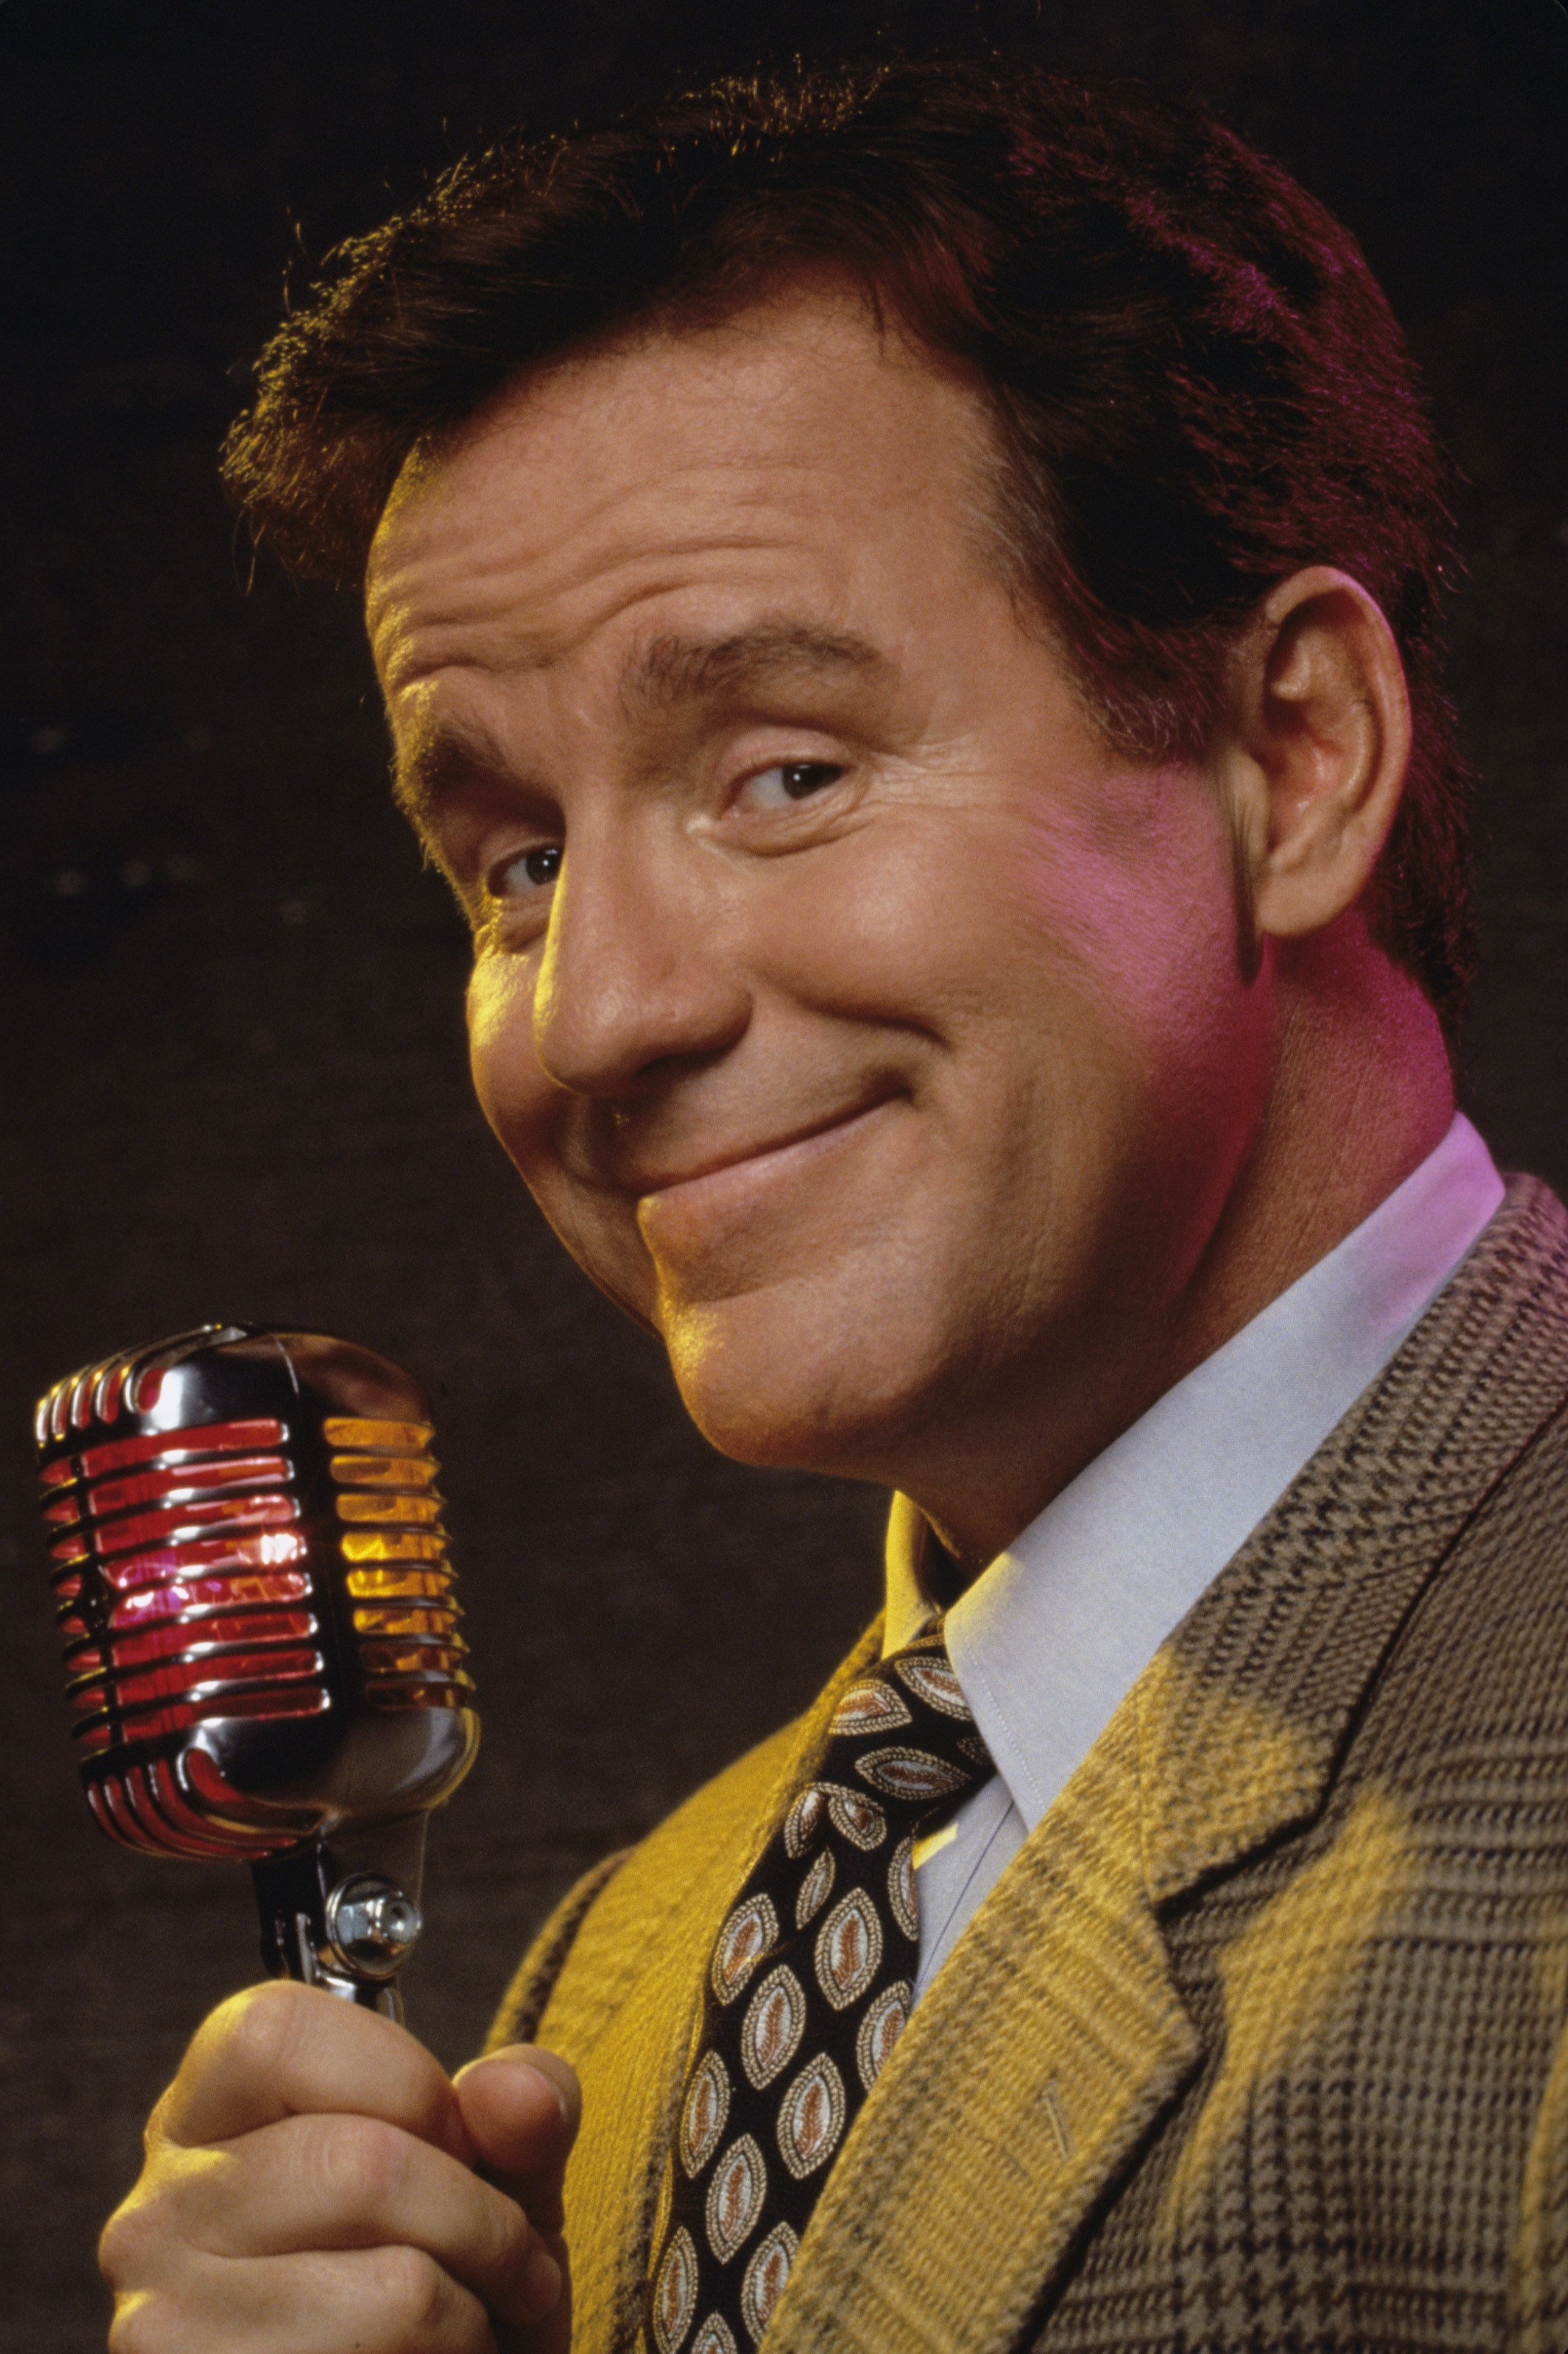 Phil Hartman | Known people - famous people news and biographies